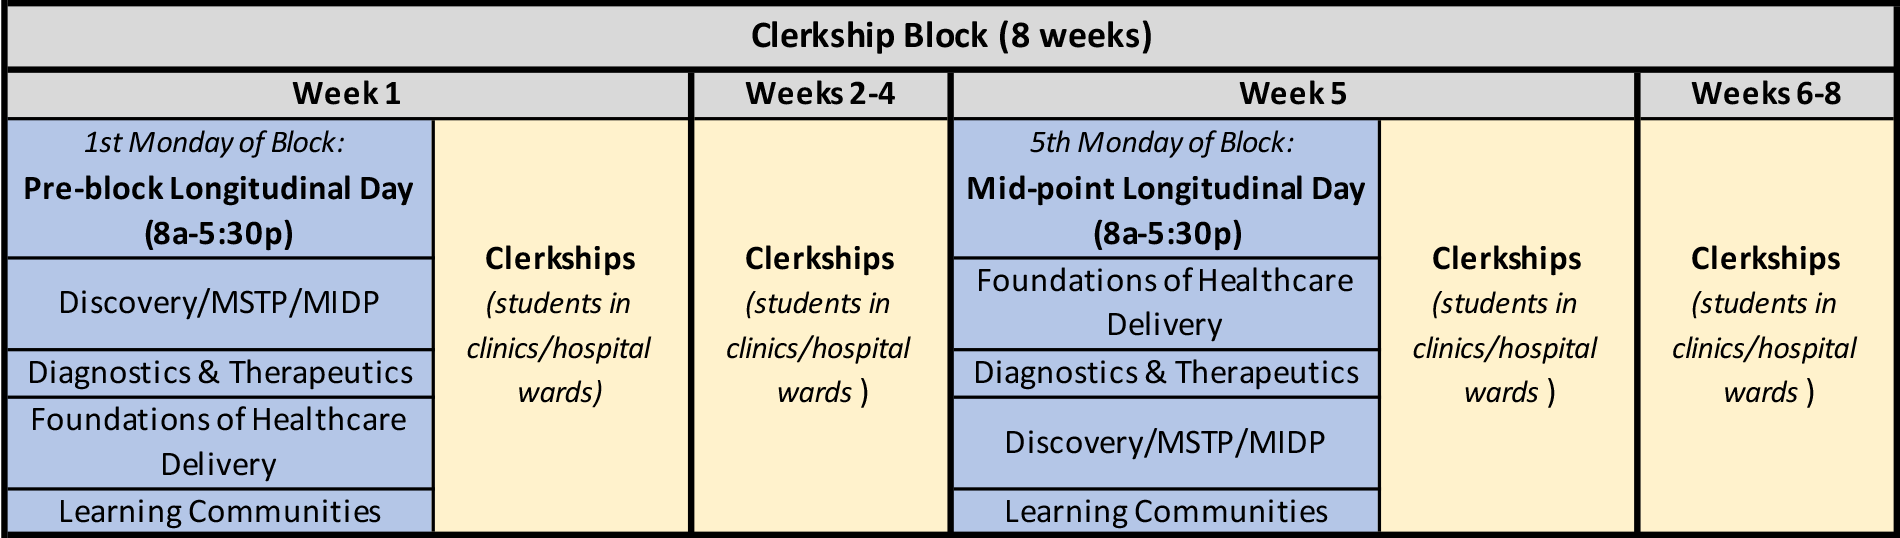 Clerkship Schematic